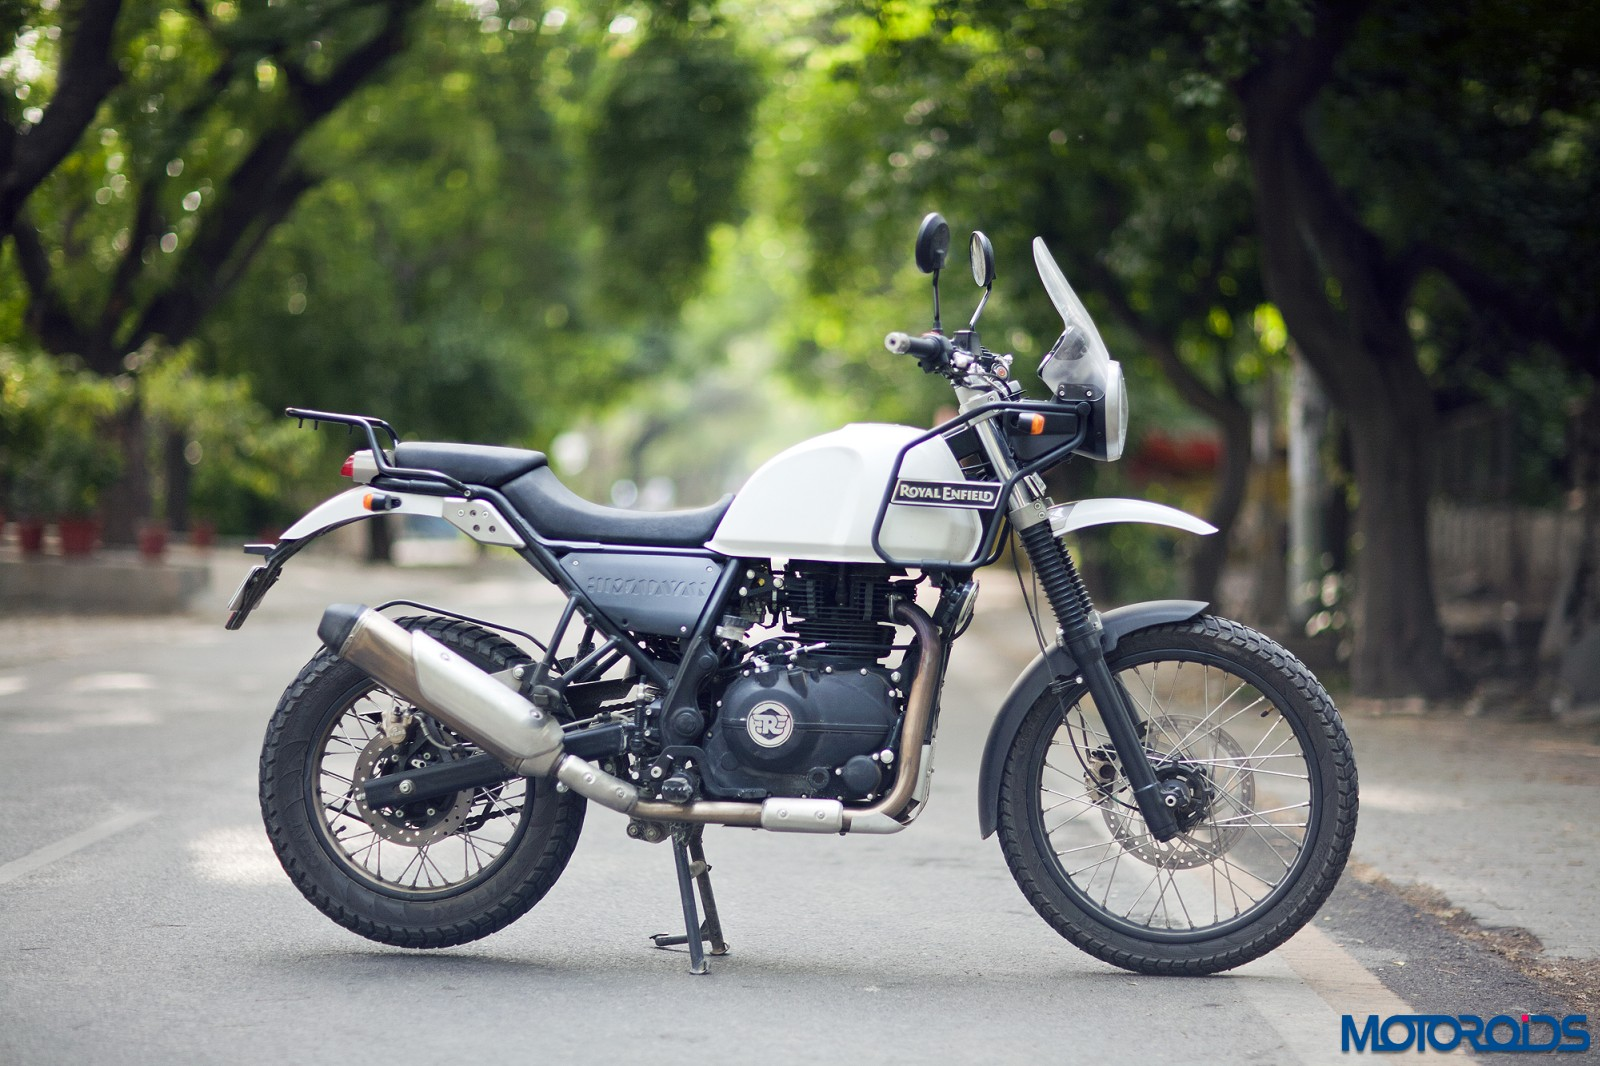 Motorcycle Riding Pants >> Royal Enfield Himalayan Review : The High Born | Motoroids